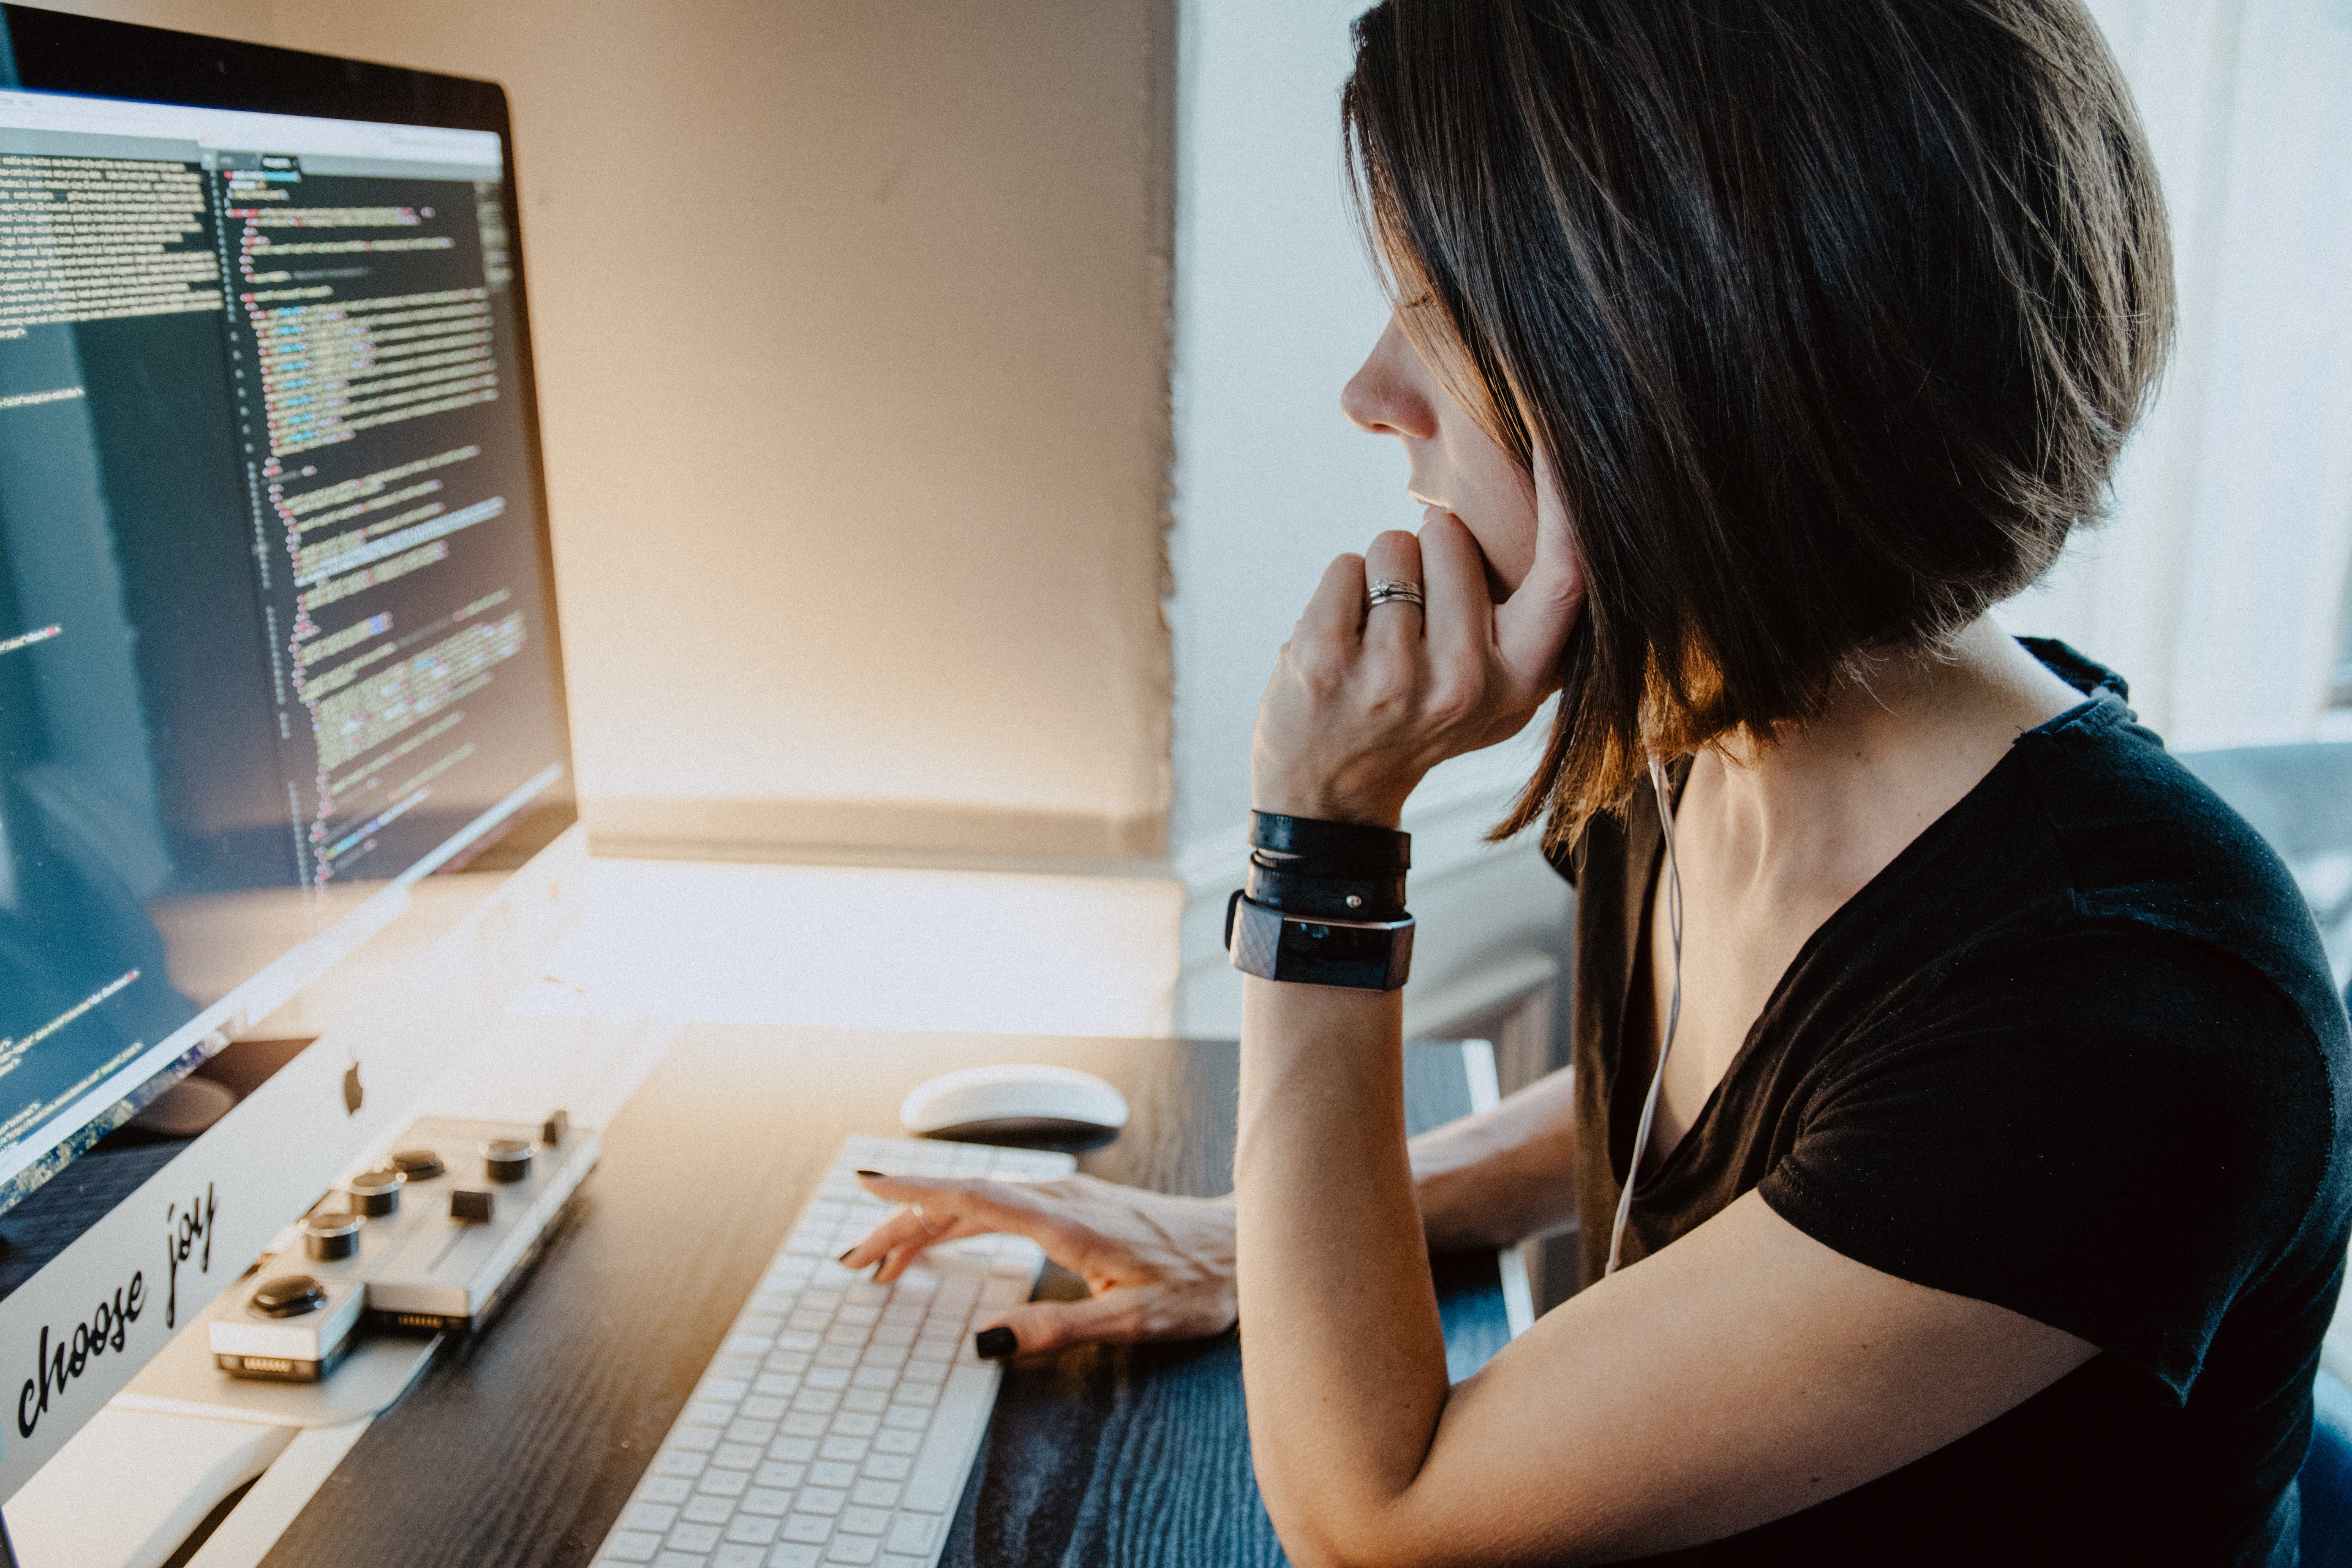 Woman sitting at a desk in front of coding computer screen; image by Kelly Sikkema, via Unsplash.com.